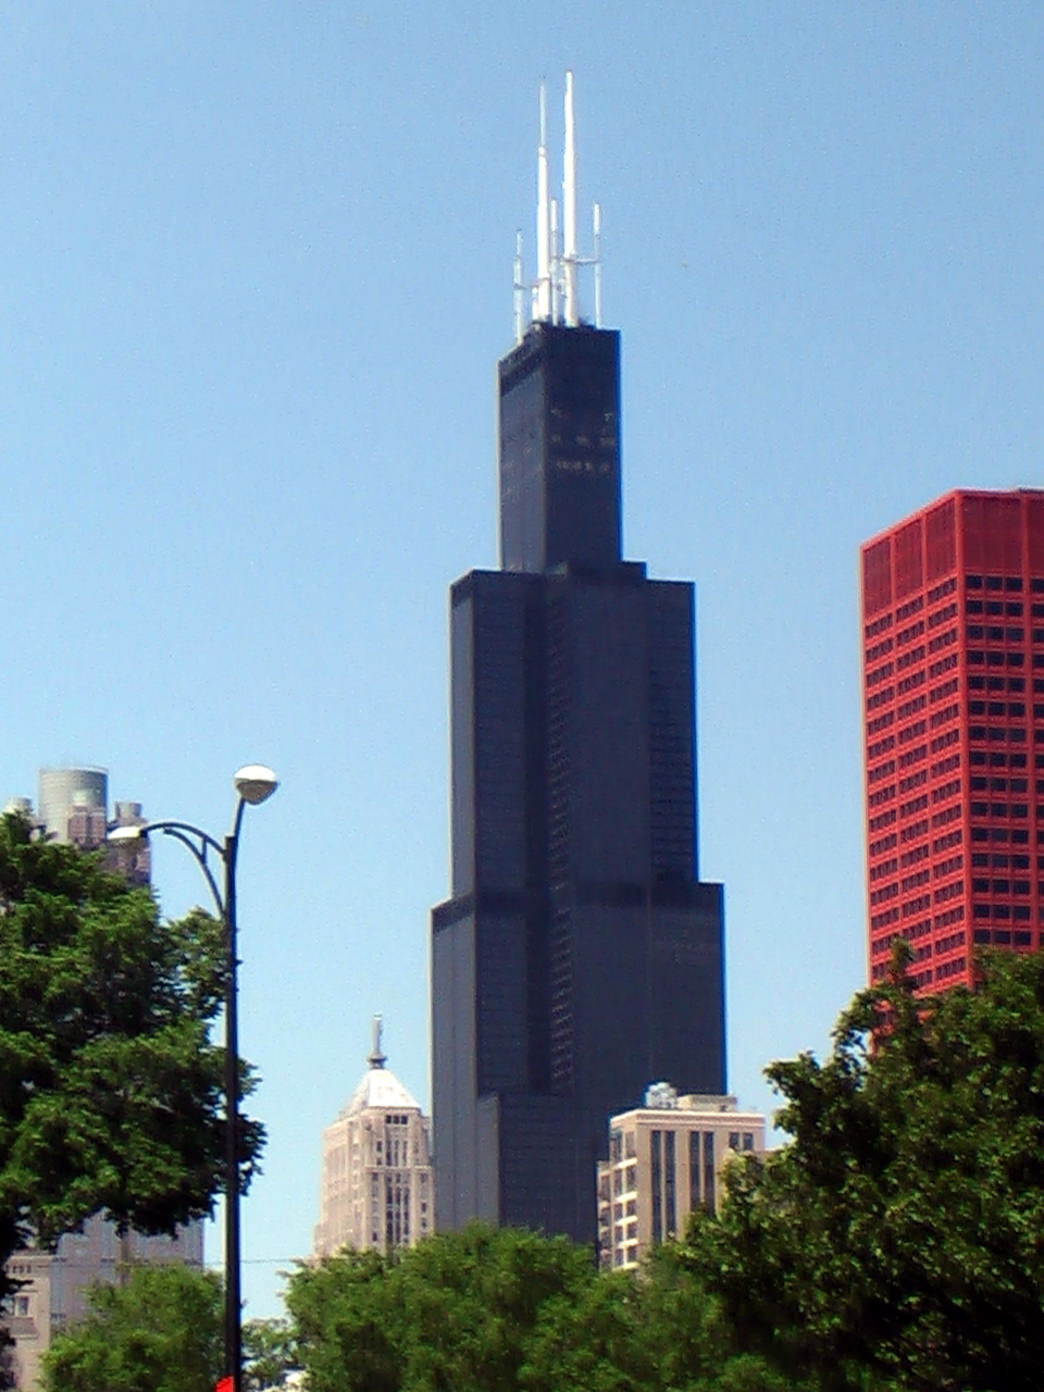 The Willis Tower, formerly known as the Sears Tower, is the highest point in Illinois.